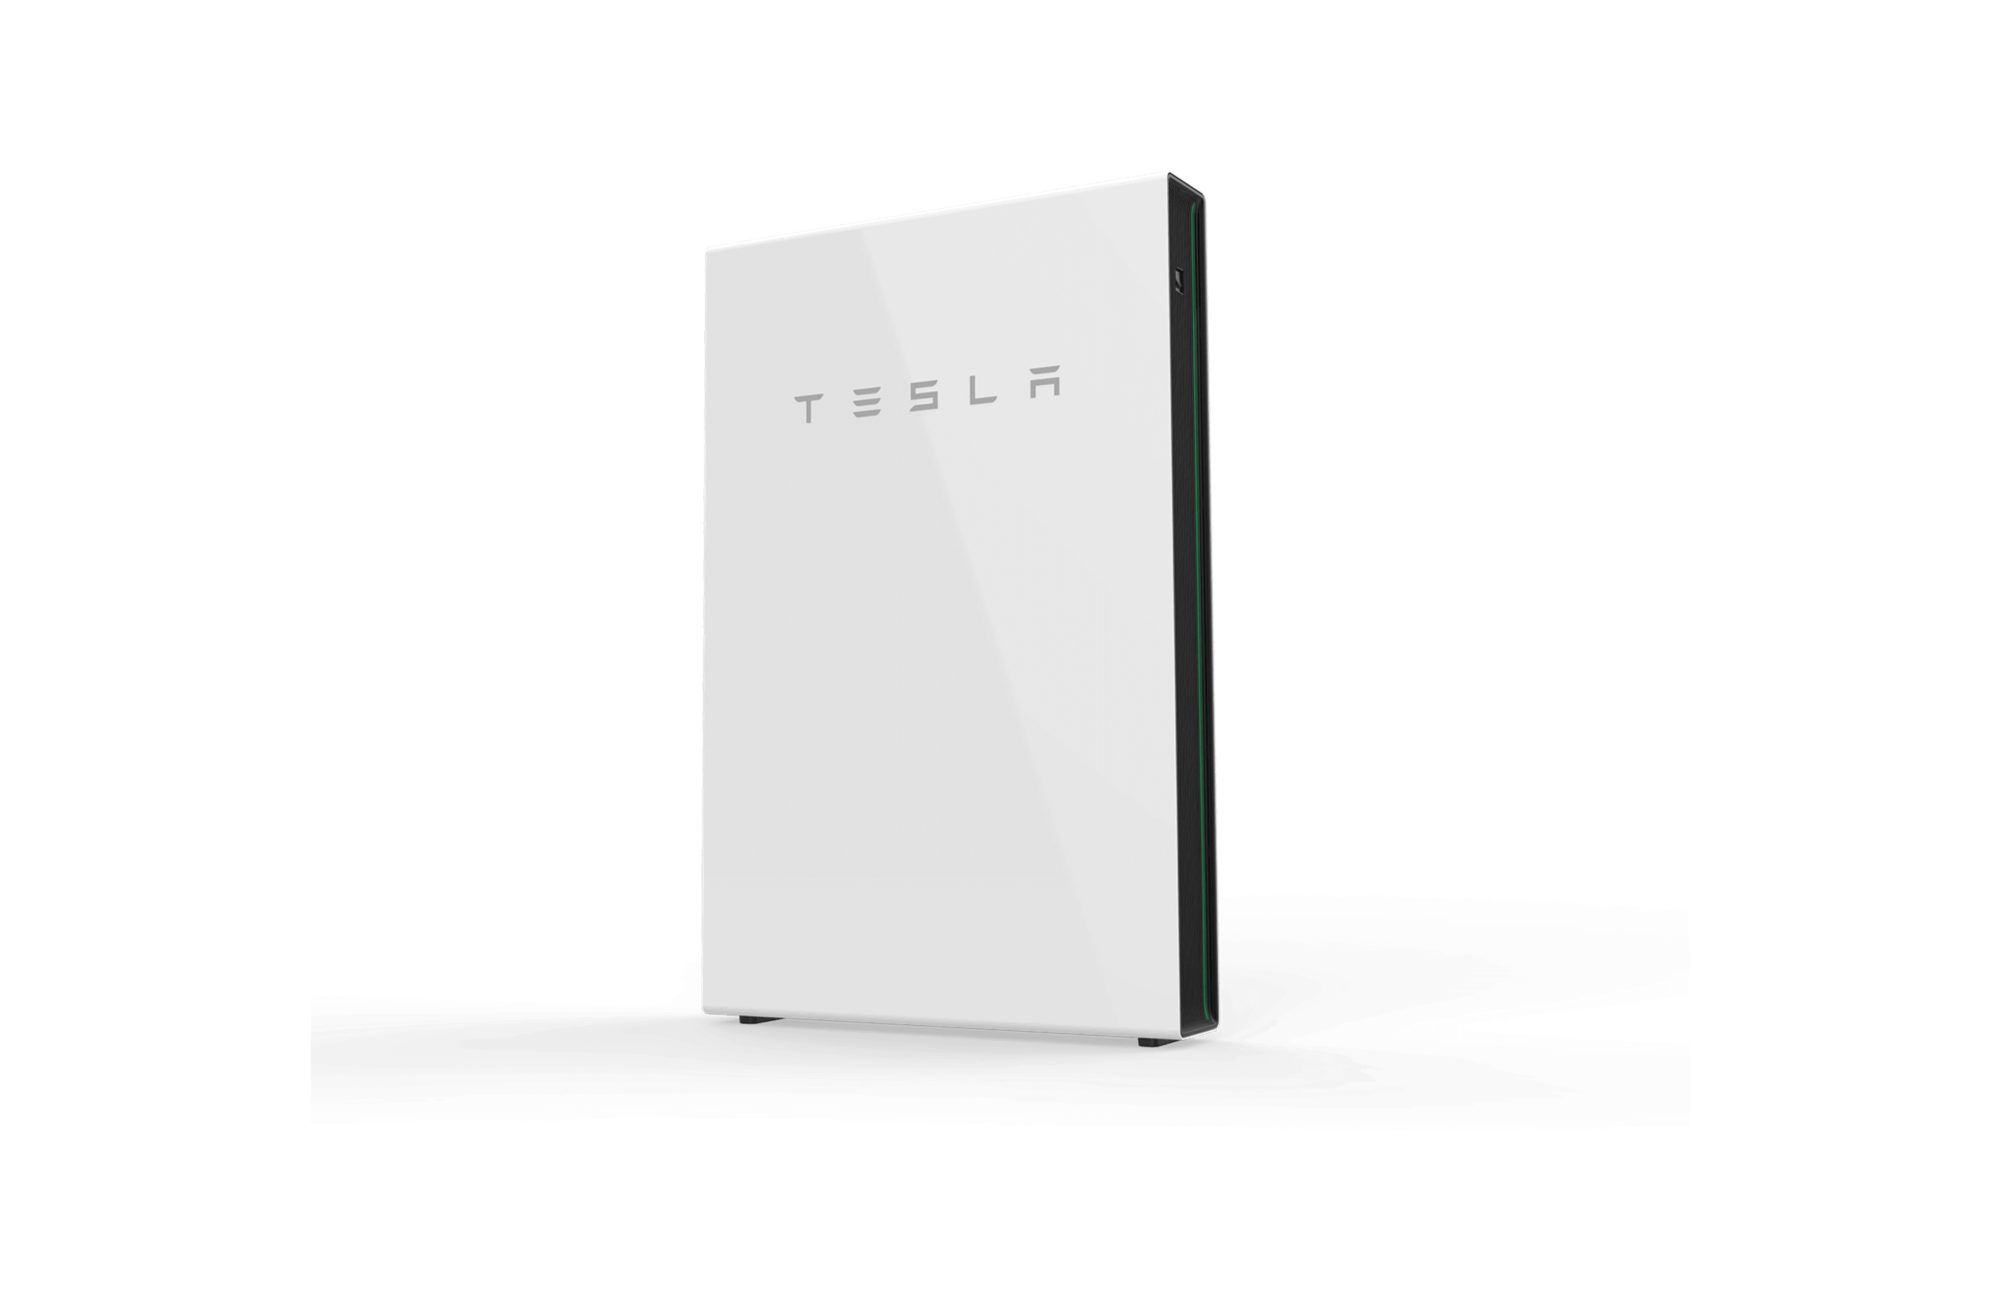 TESLA POWERWALL HOME BATTERY NEW TECHNOLOGY FOR GREEN HOMES